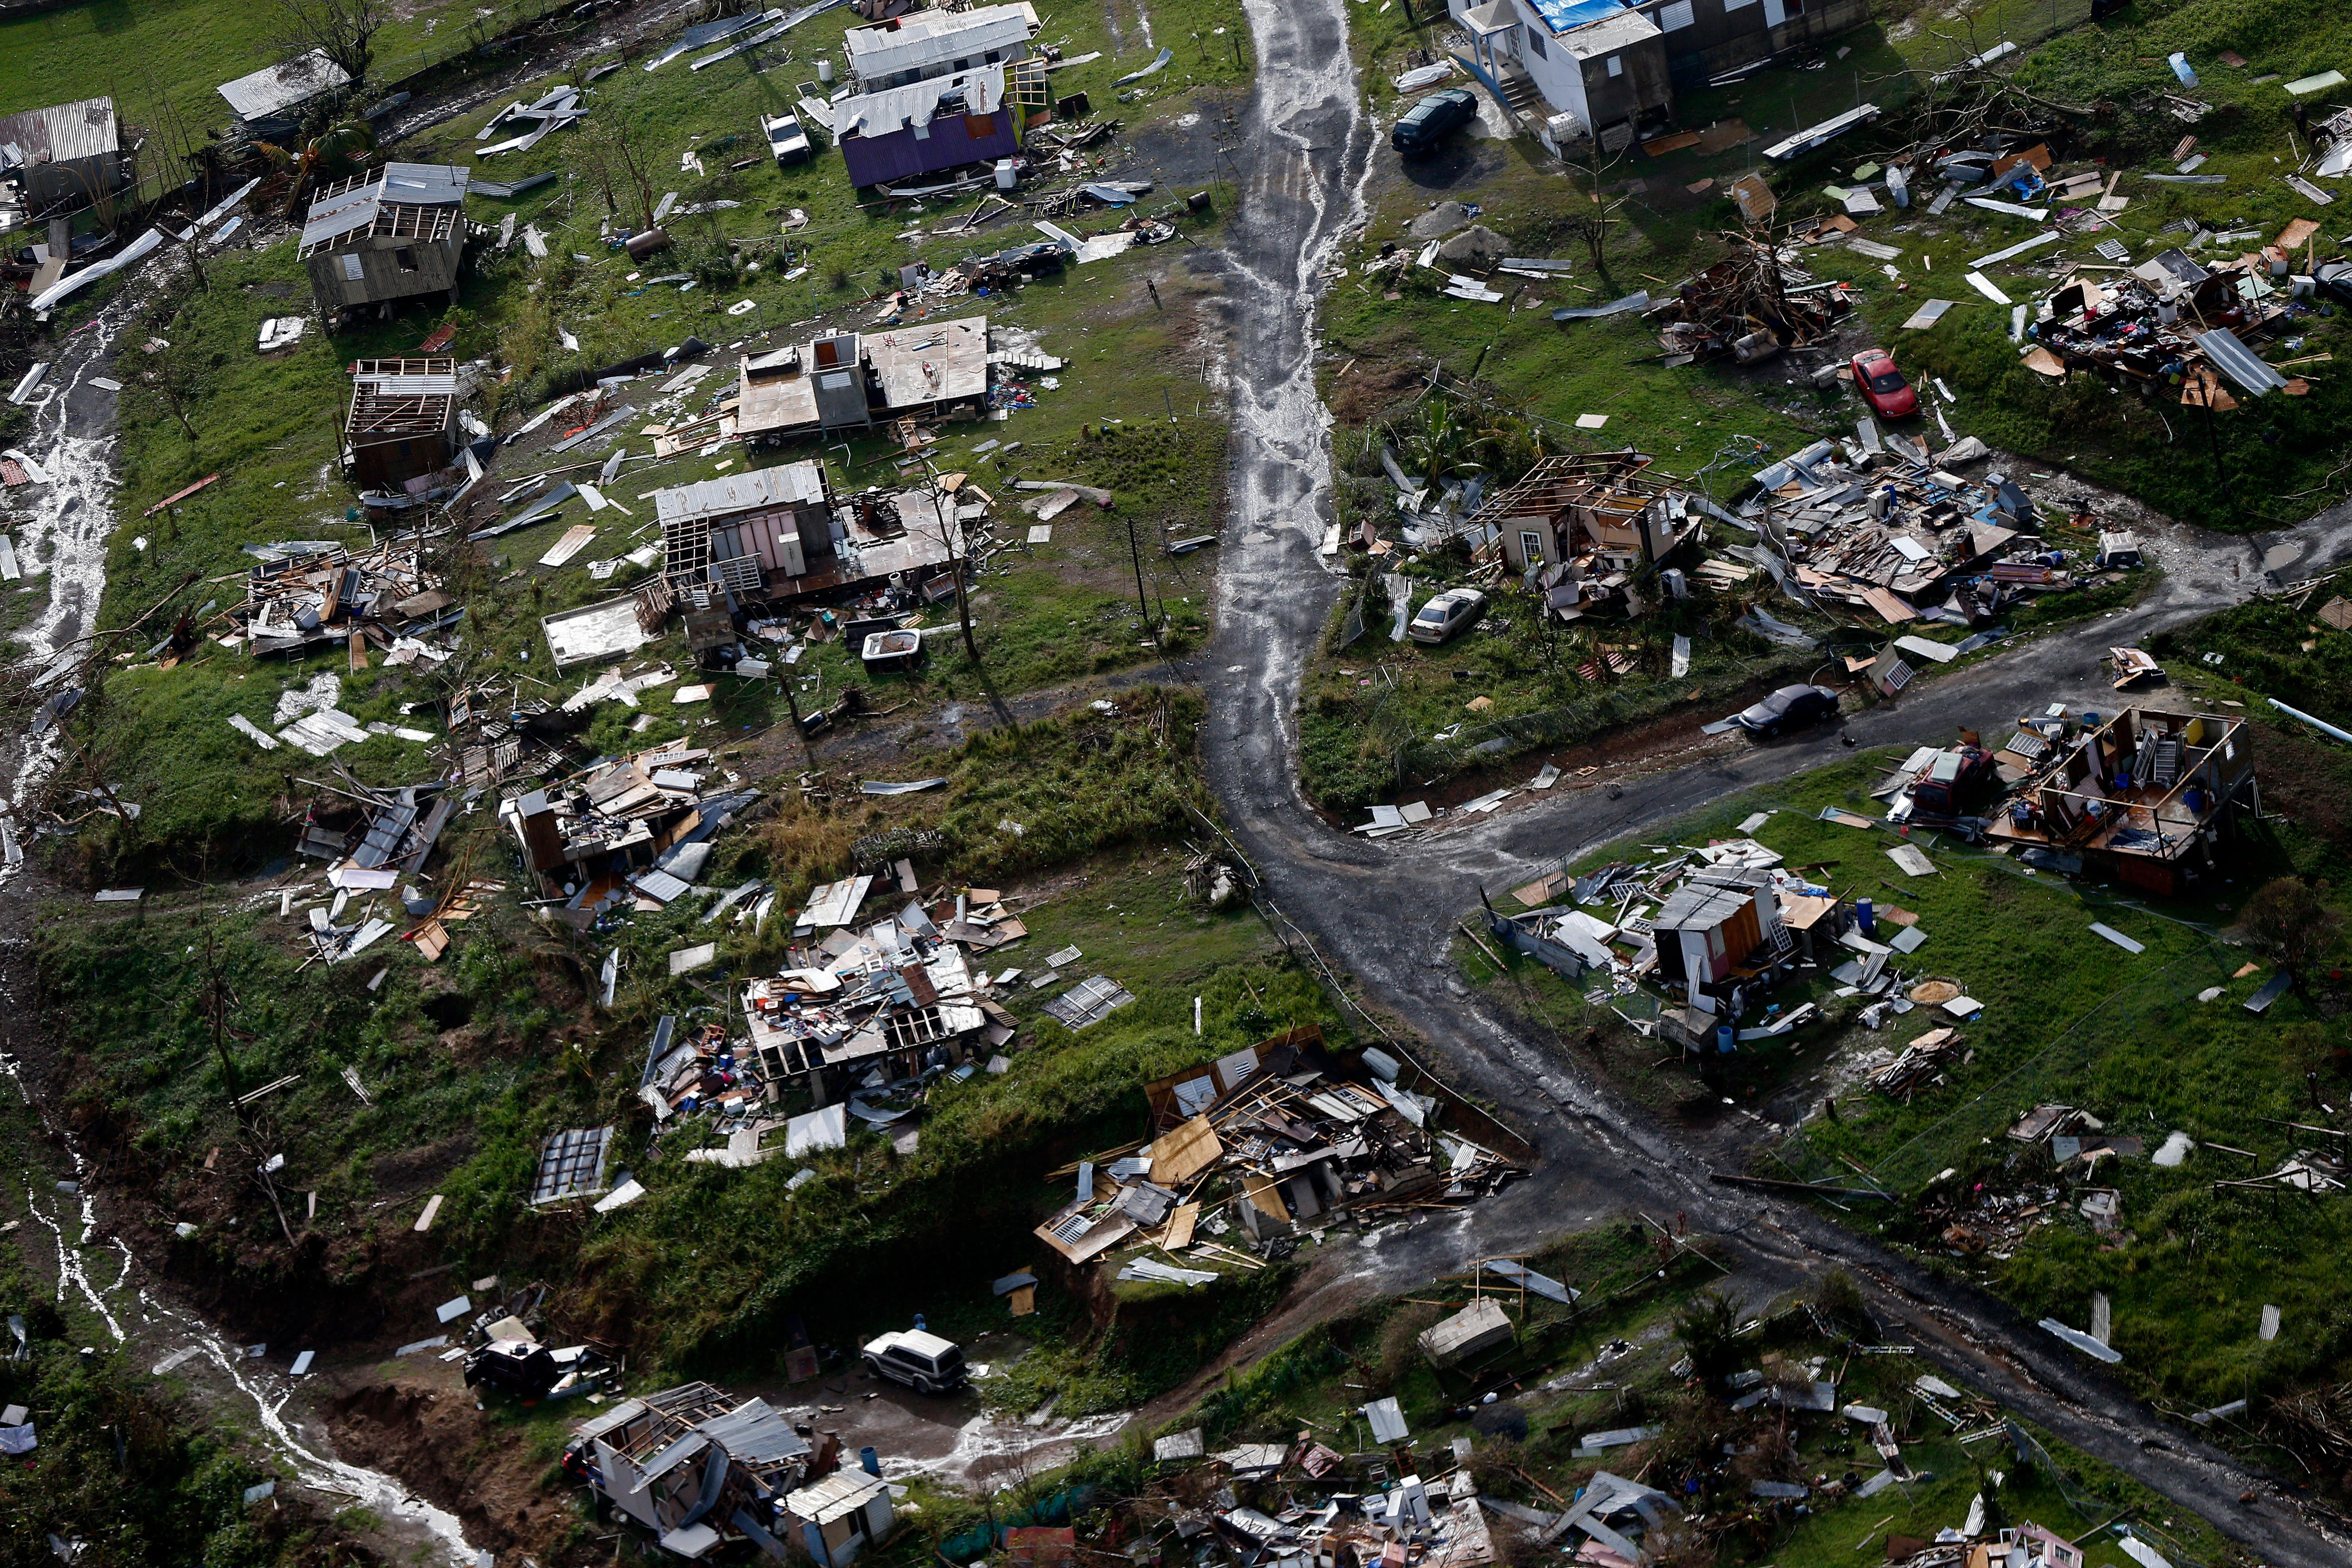 Destroyed communities are seen in the aftermath of Hurricane Maria in Toa Alta, Puerto Rico, Thursday, Sept. 28, 2017.  (AP Photo/Gerald Herbert)